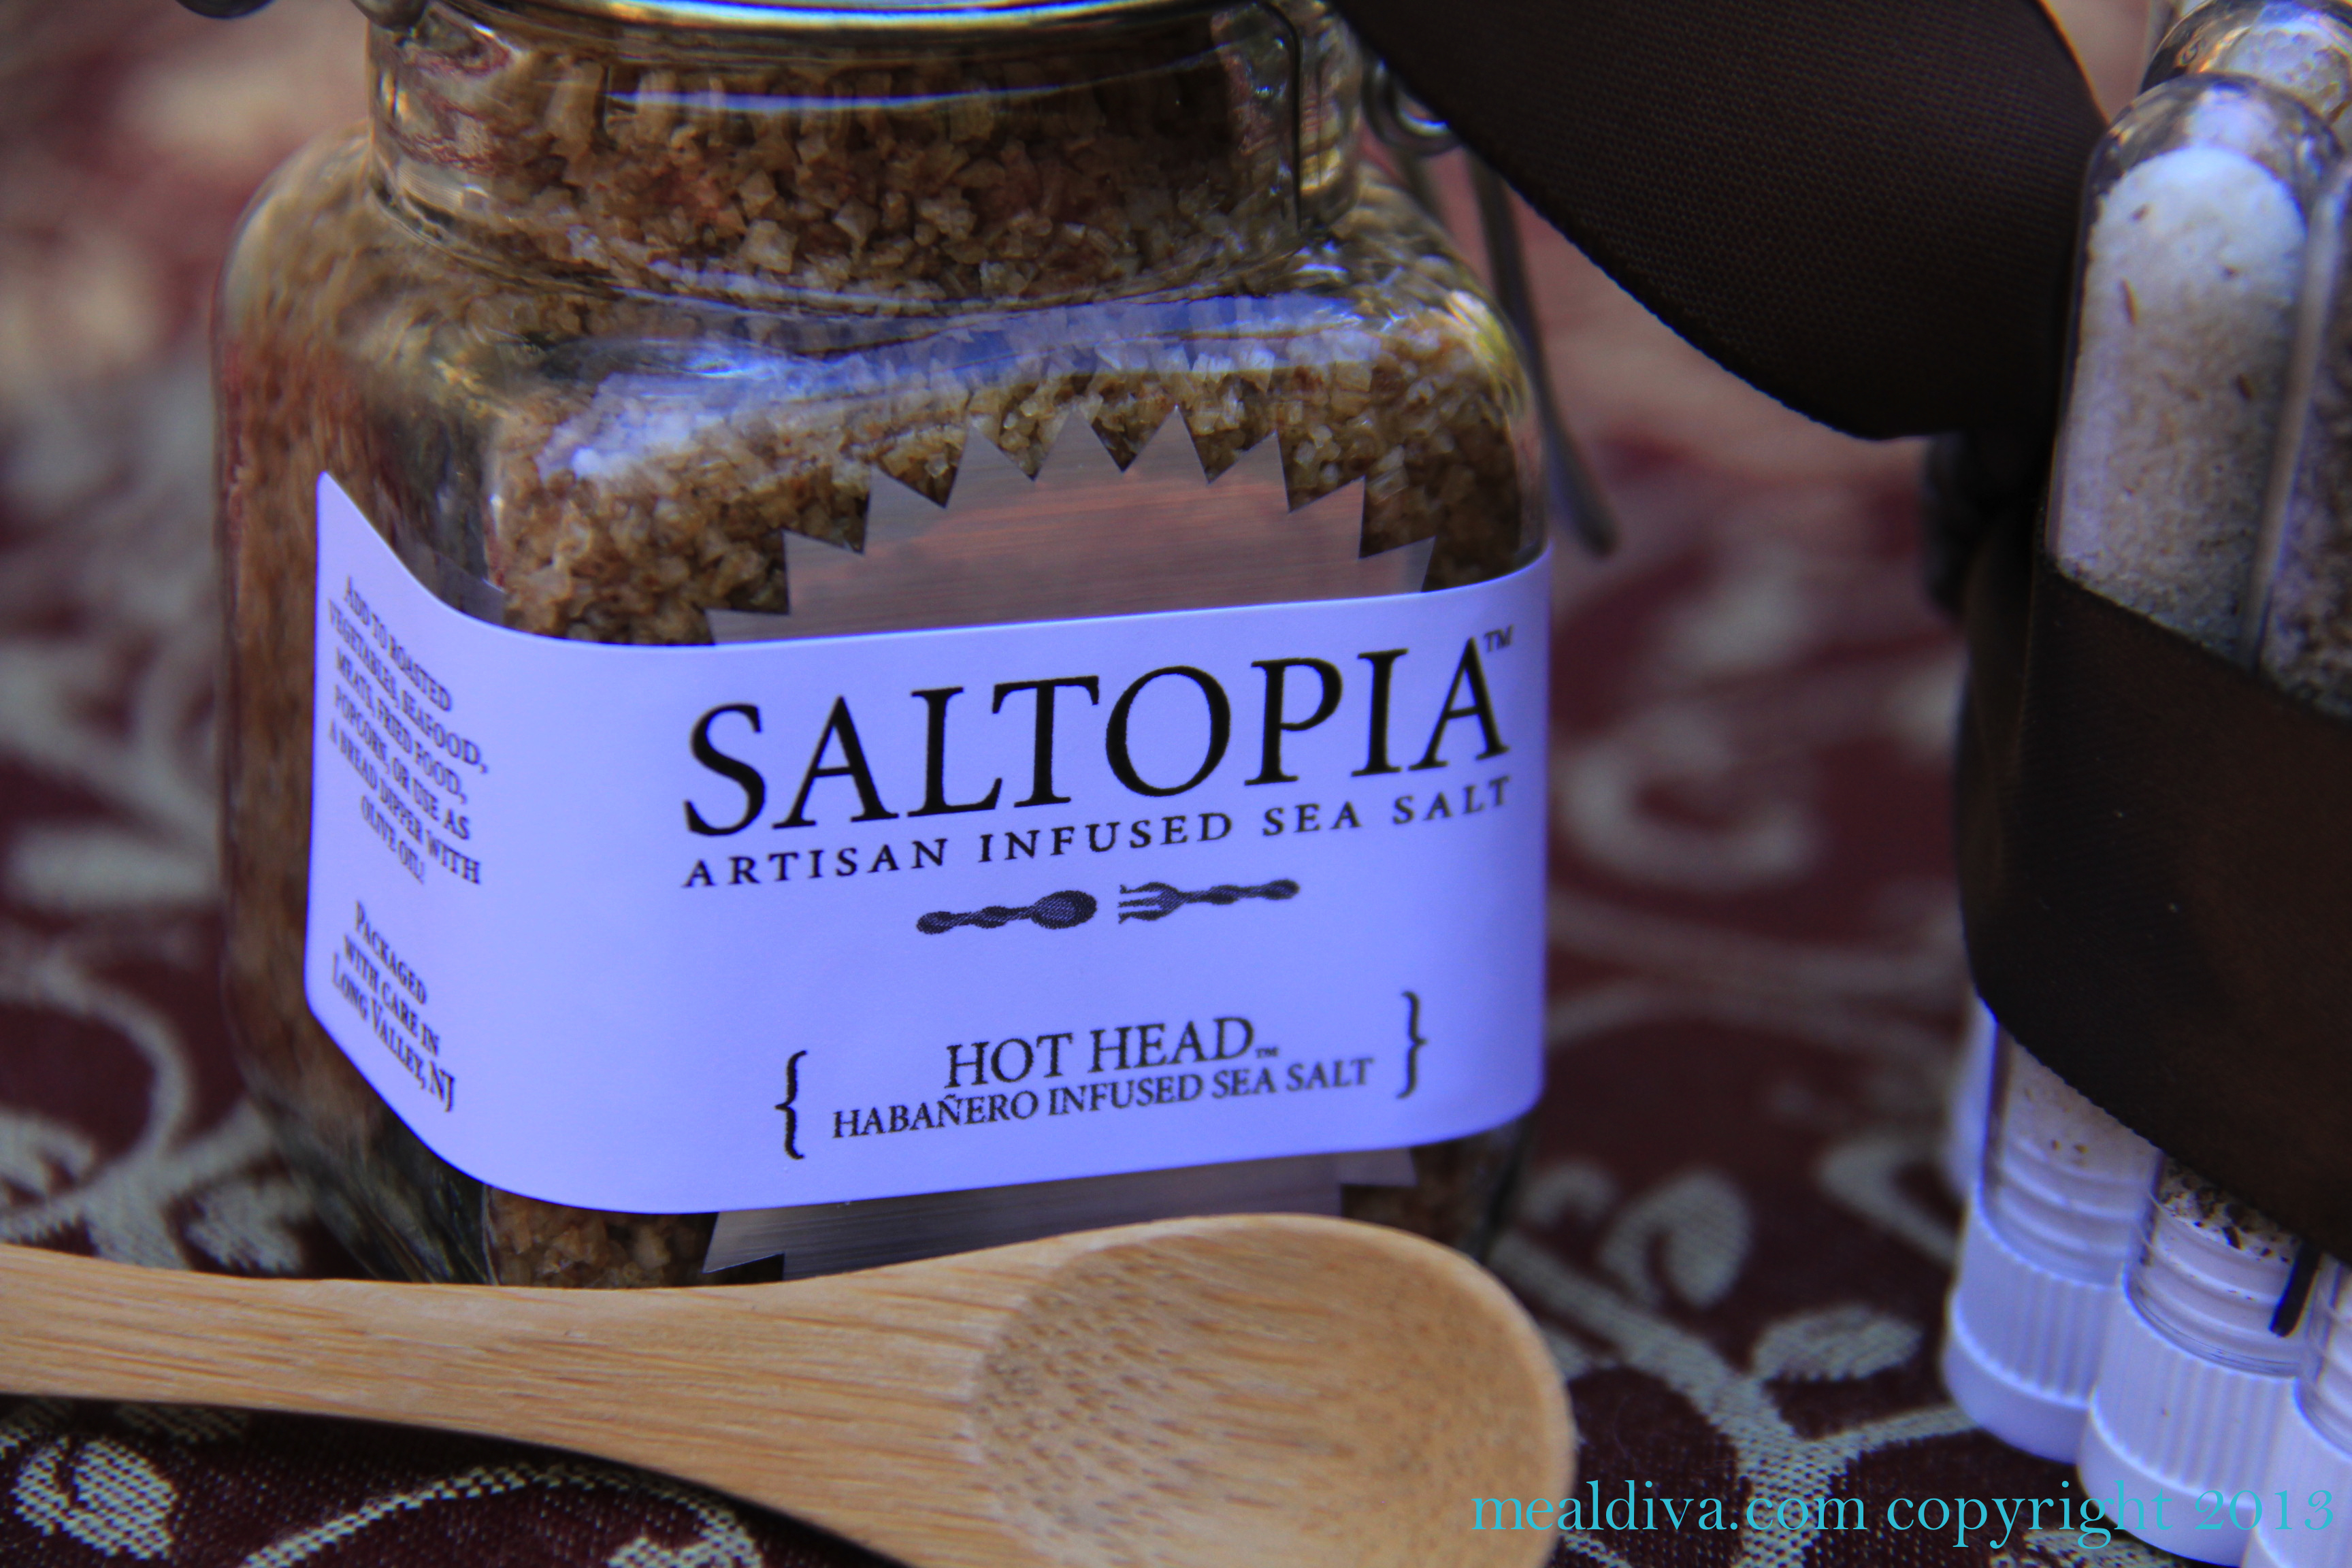 Saltopia: Locally Infused Sea Salt